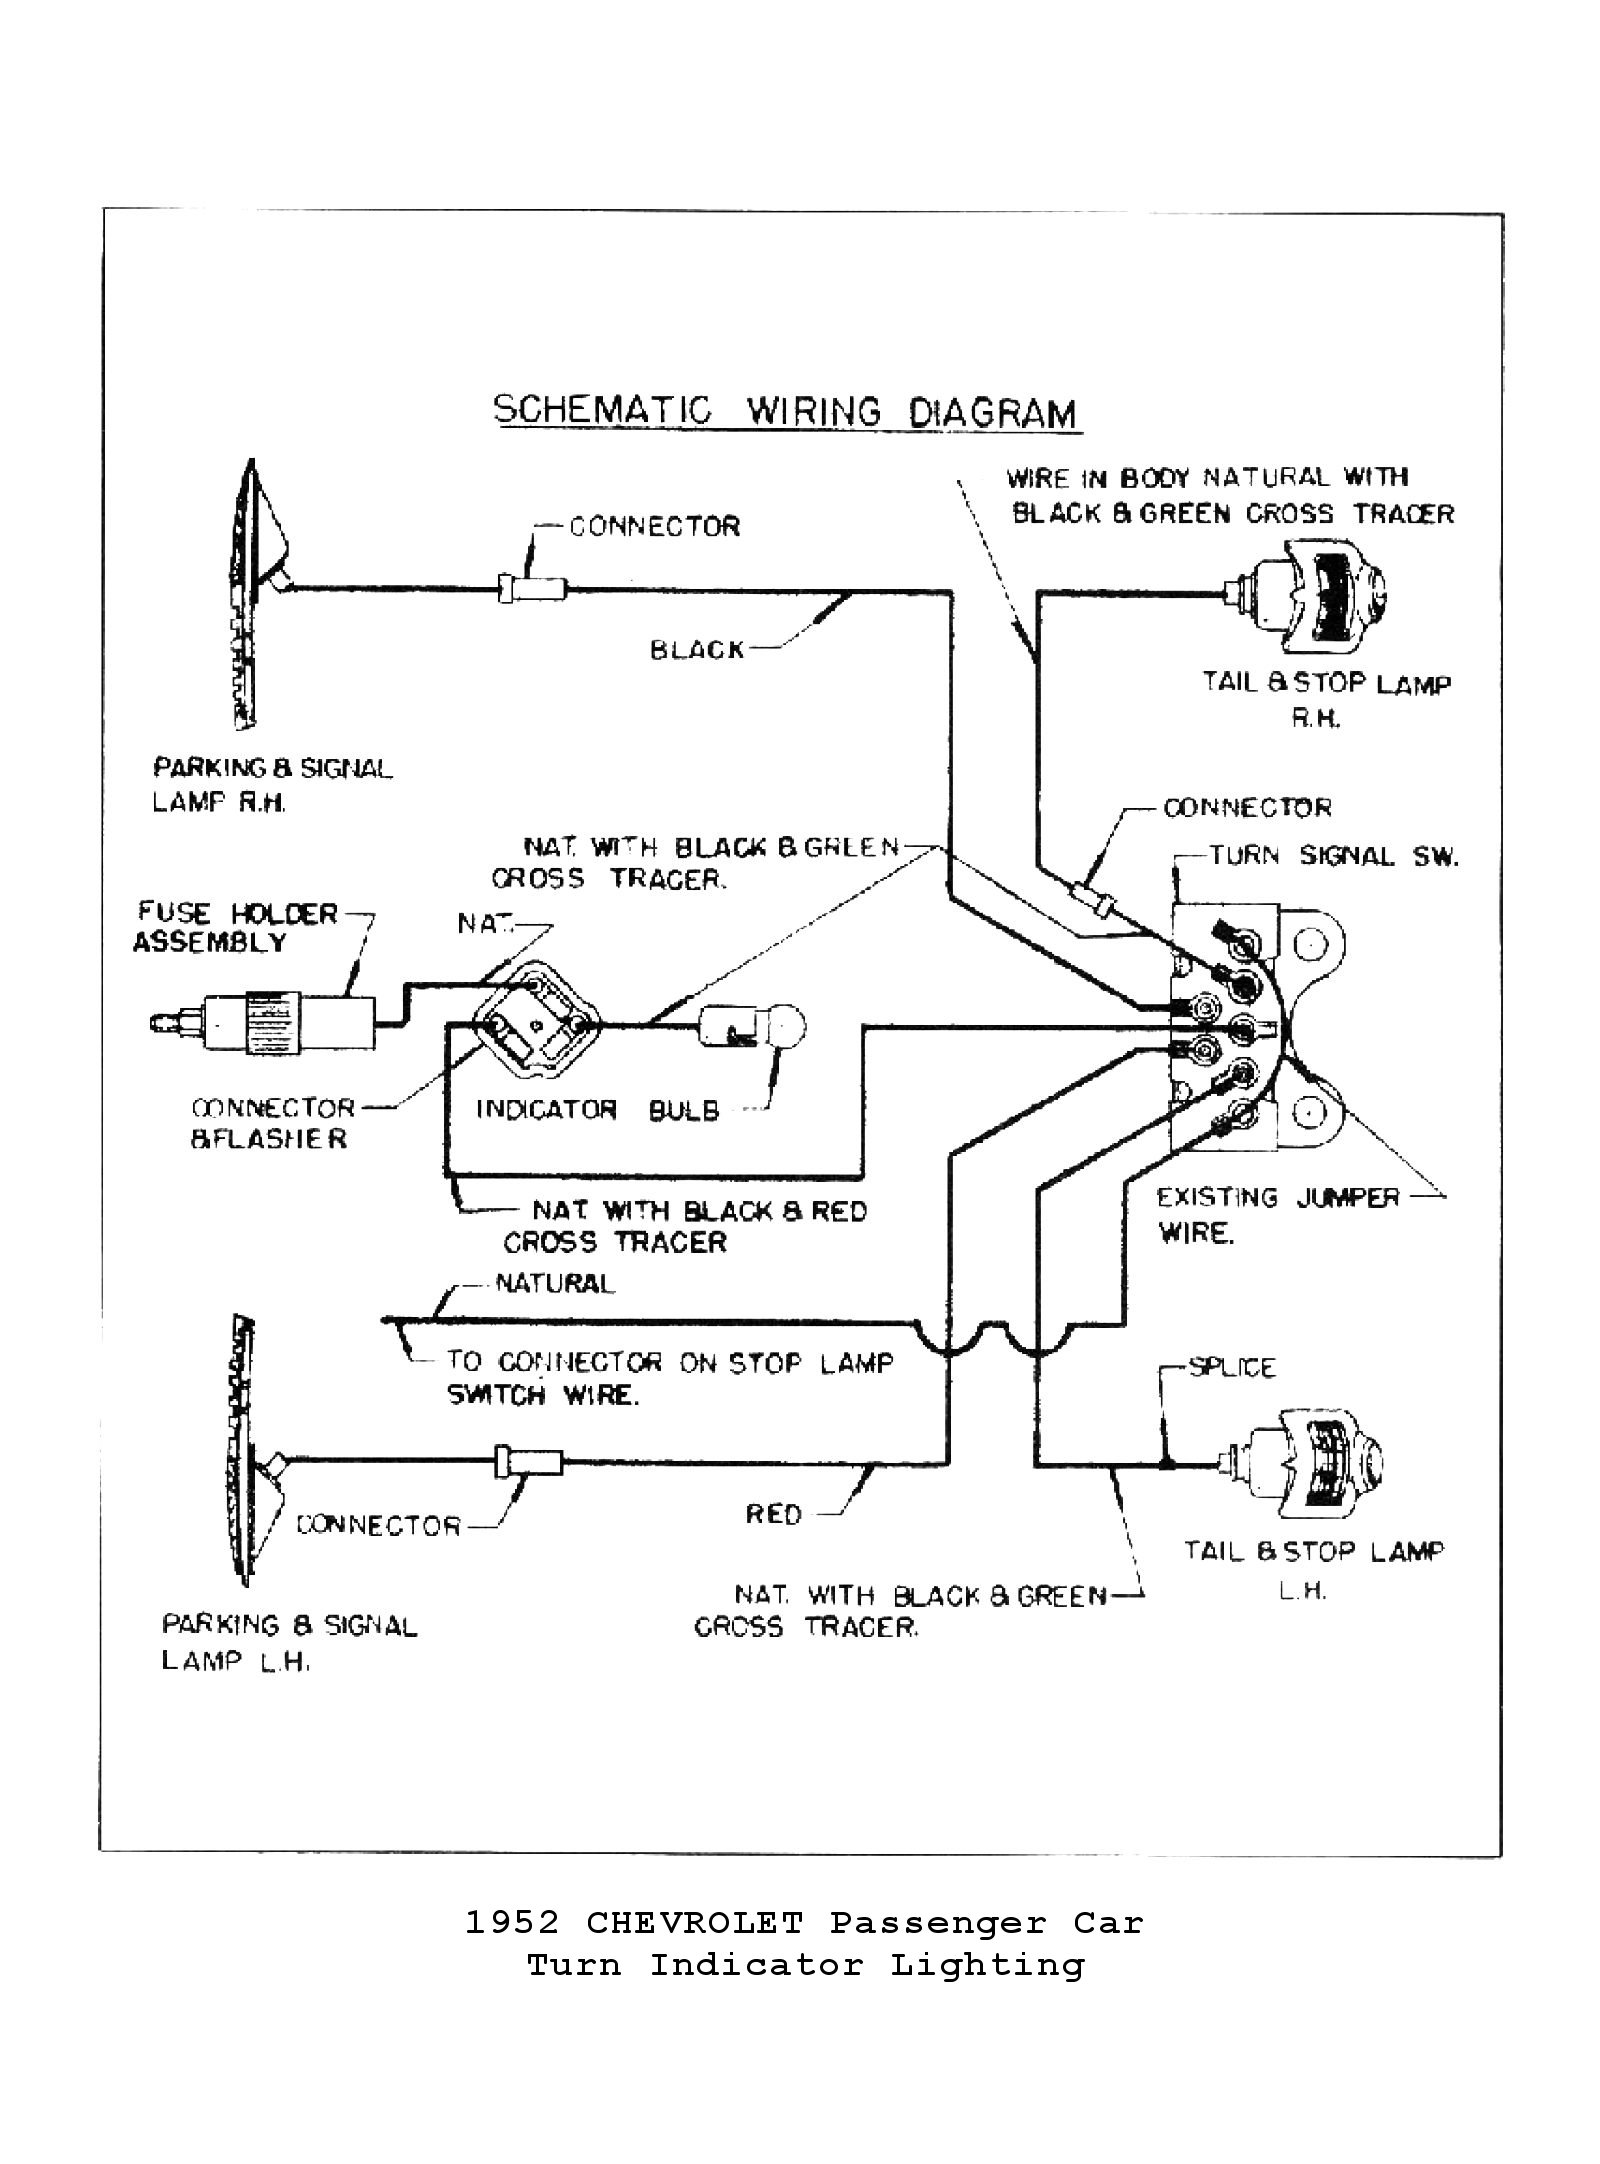 truck wiring diagram on 1950 chevy wiring diagram for turn signals rh casiaroc co 1955 chevy truck turn signal wiring 1955 chevy truck turn signal wiring diagram